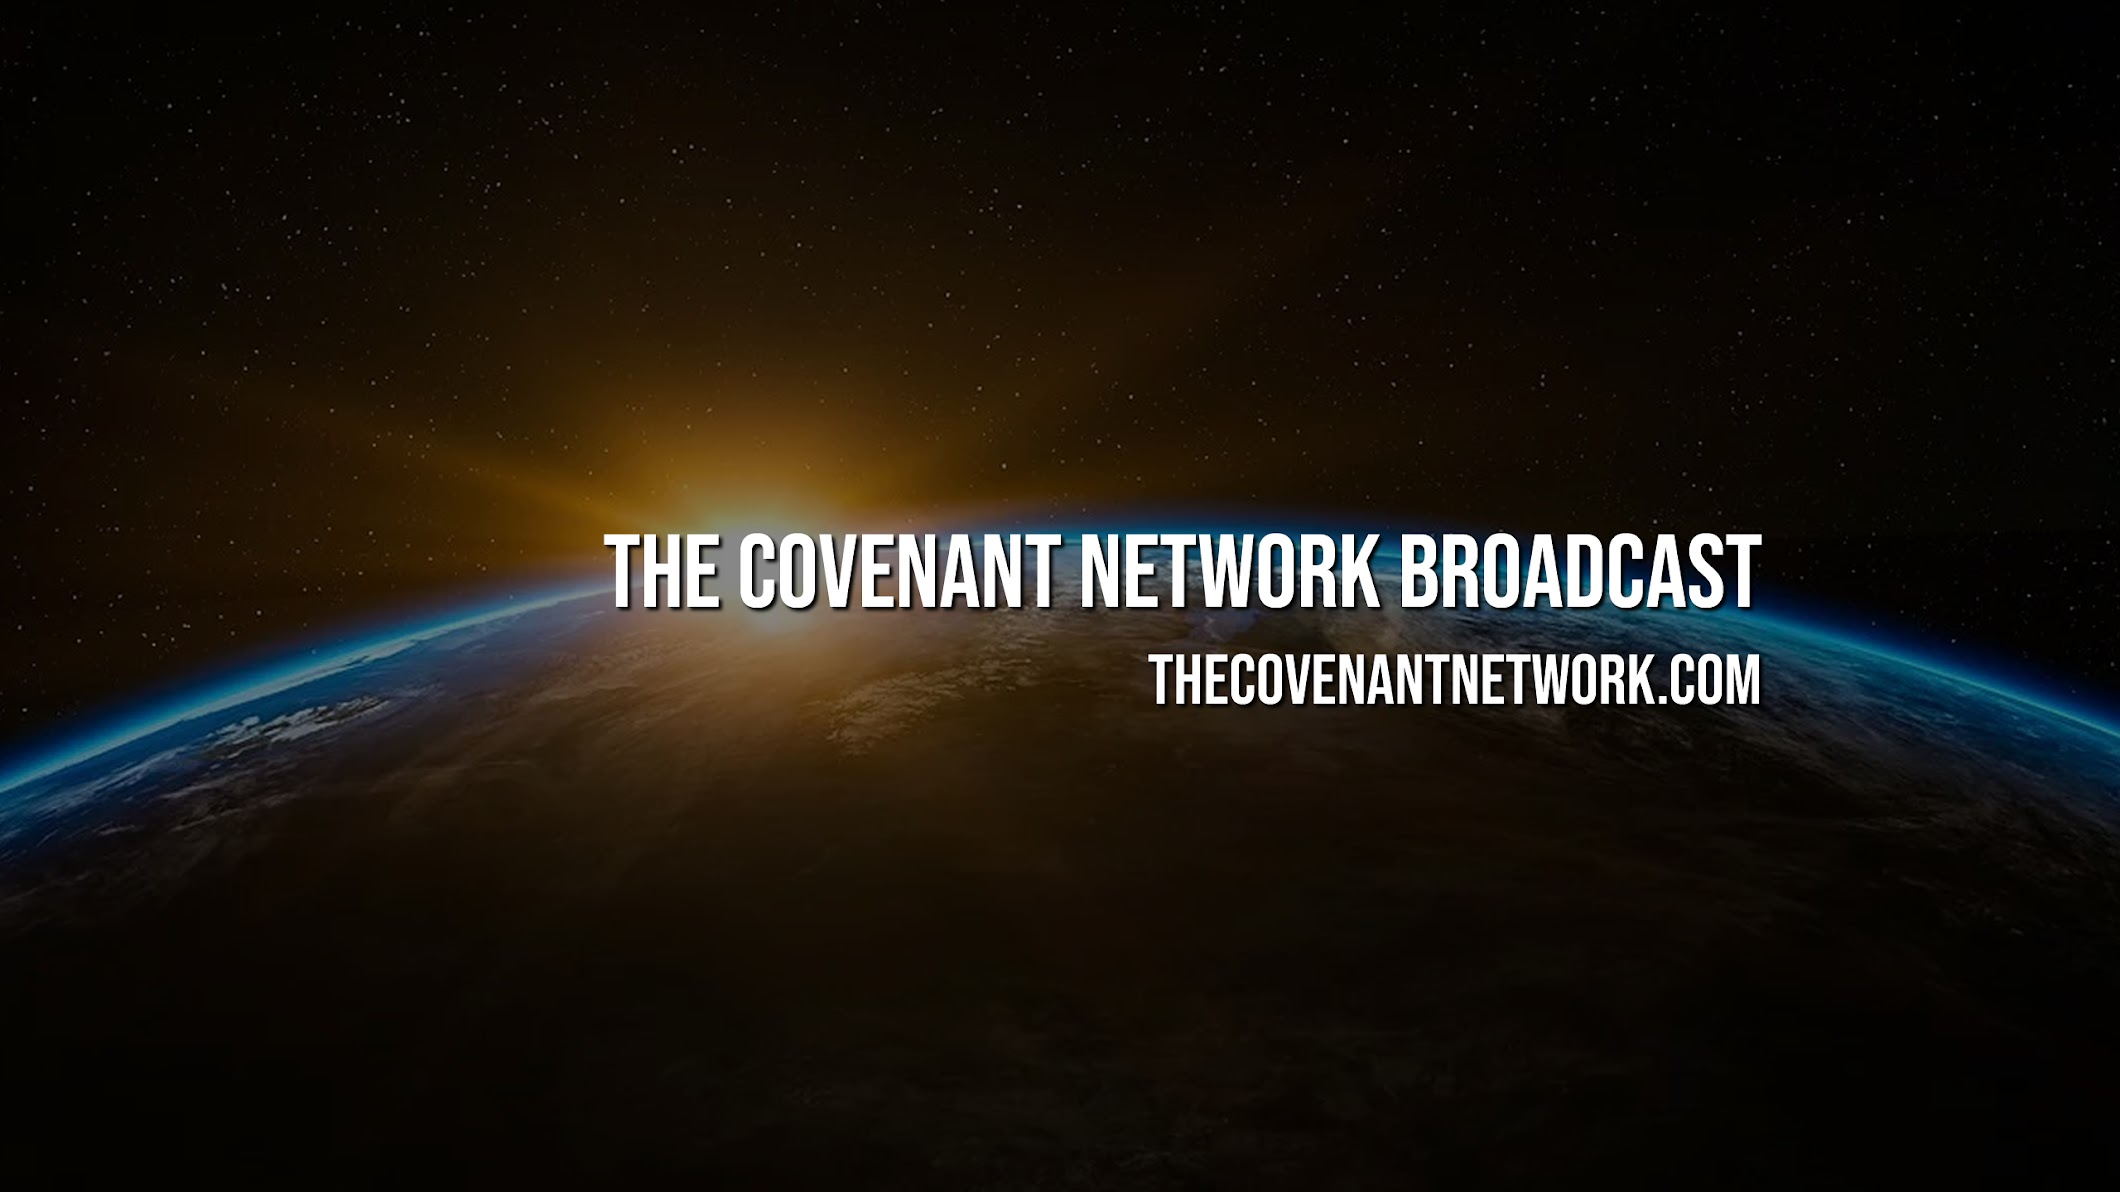 The Covenant Network Broadcast